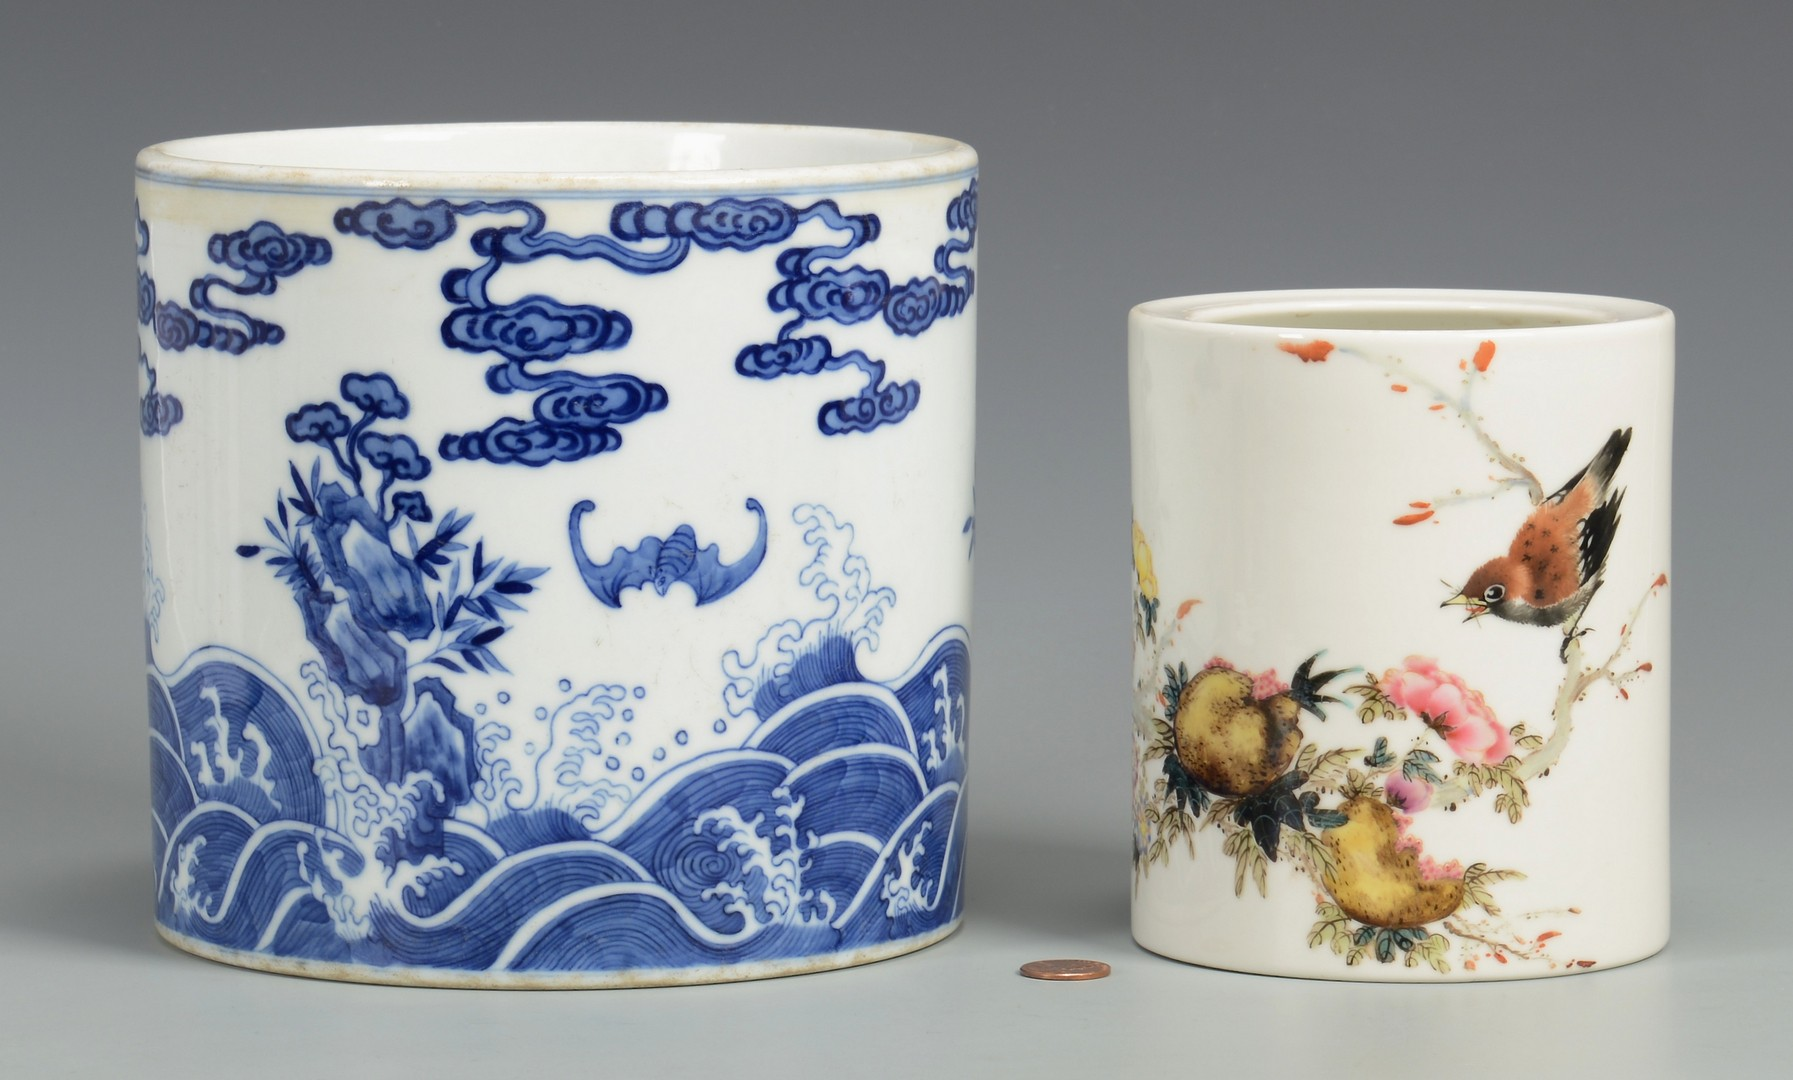 Lot 3594238: 2 Chinese Porcelain Brush Pots